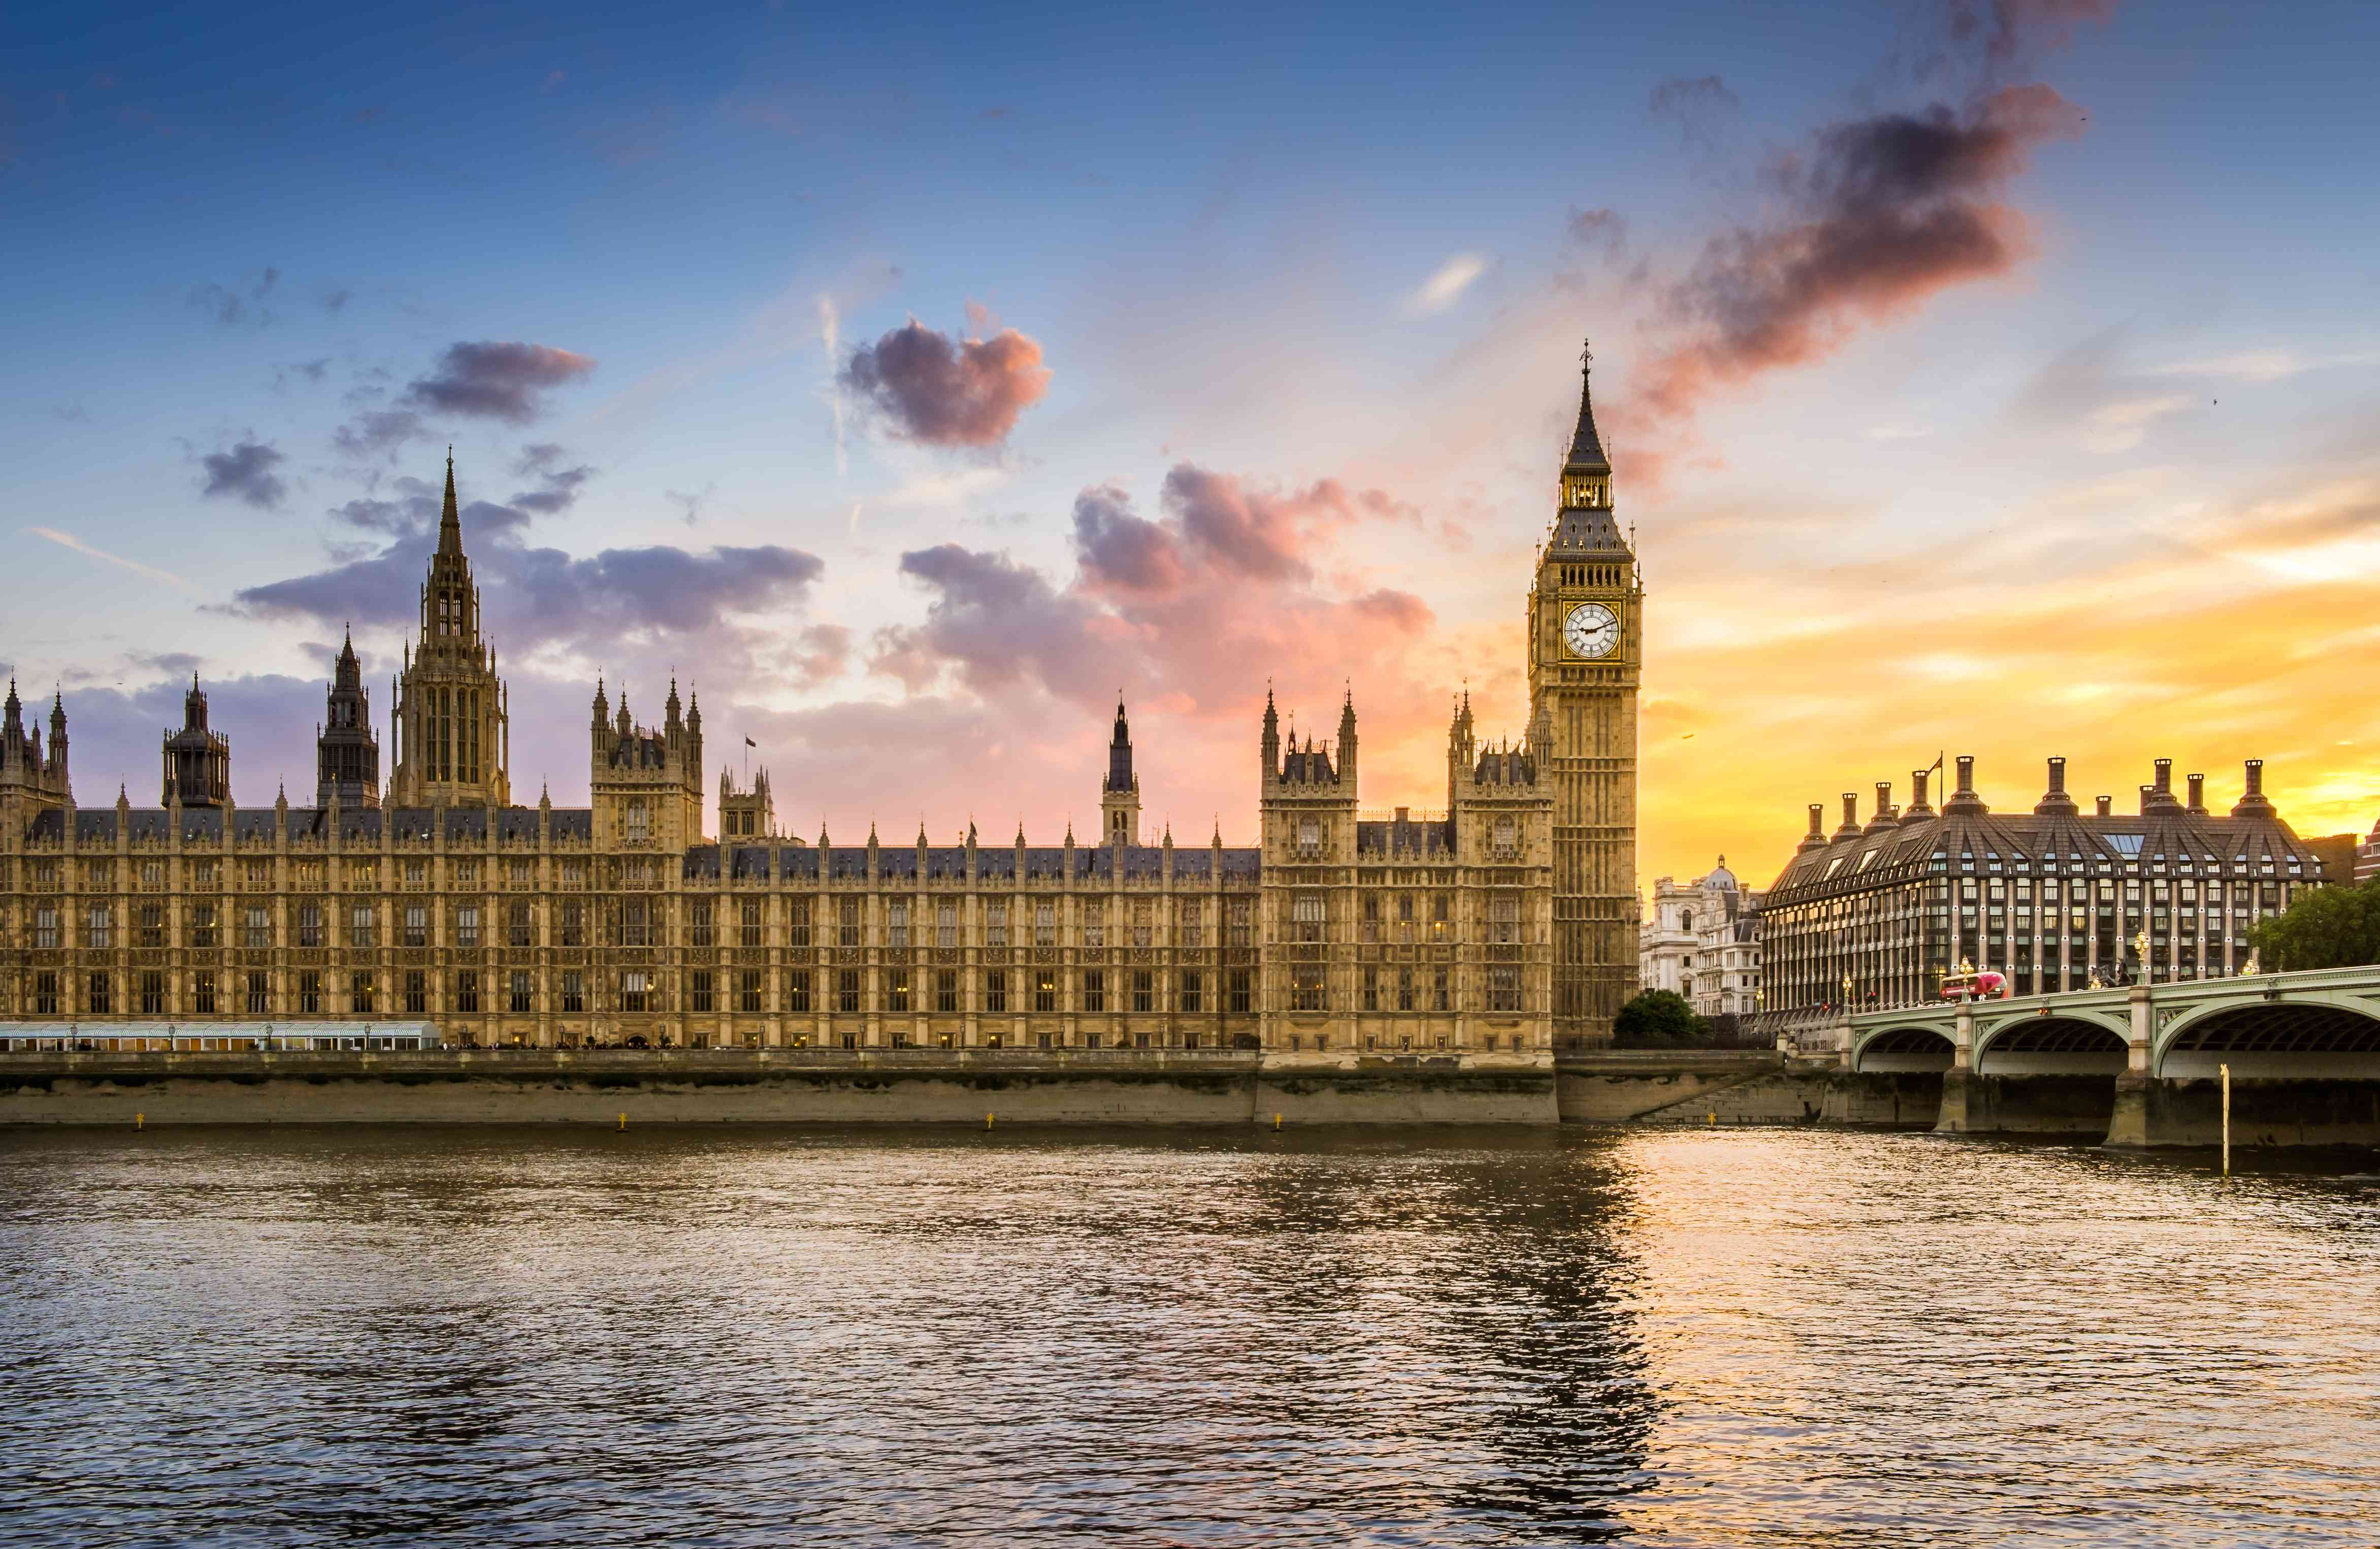 the house of parliament at sunset photographed from across the thames